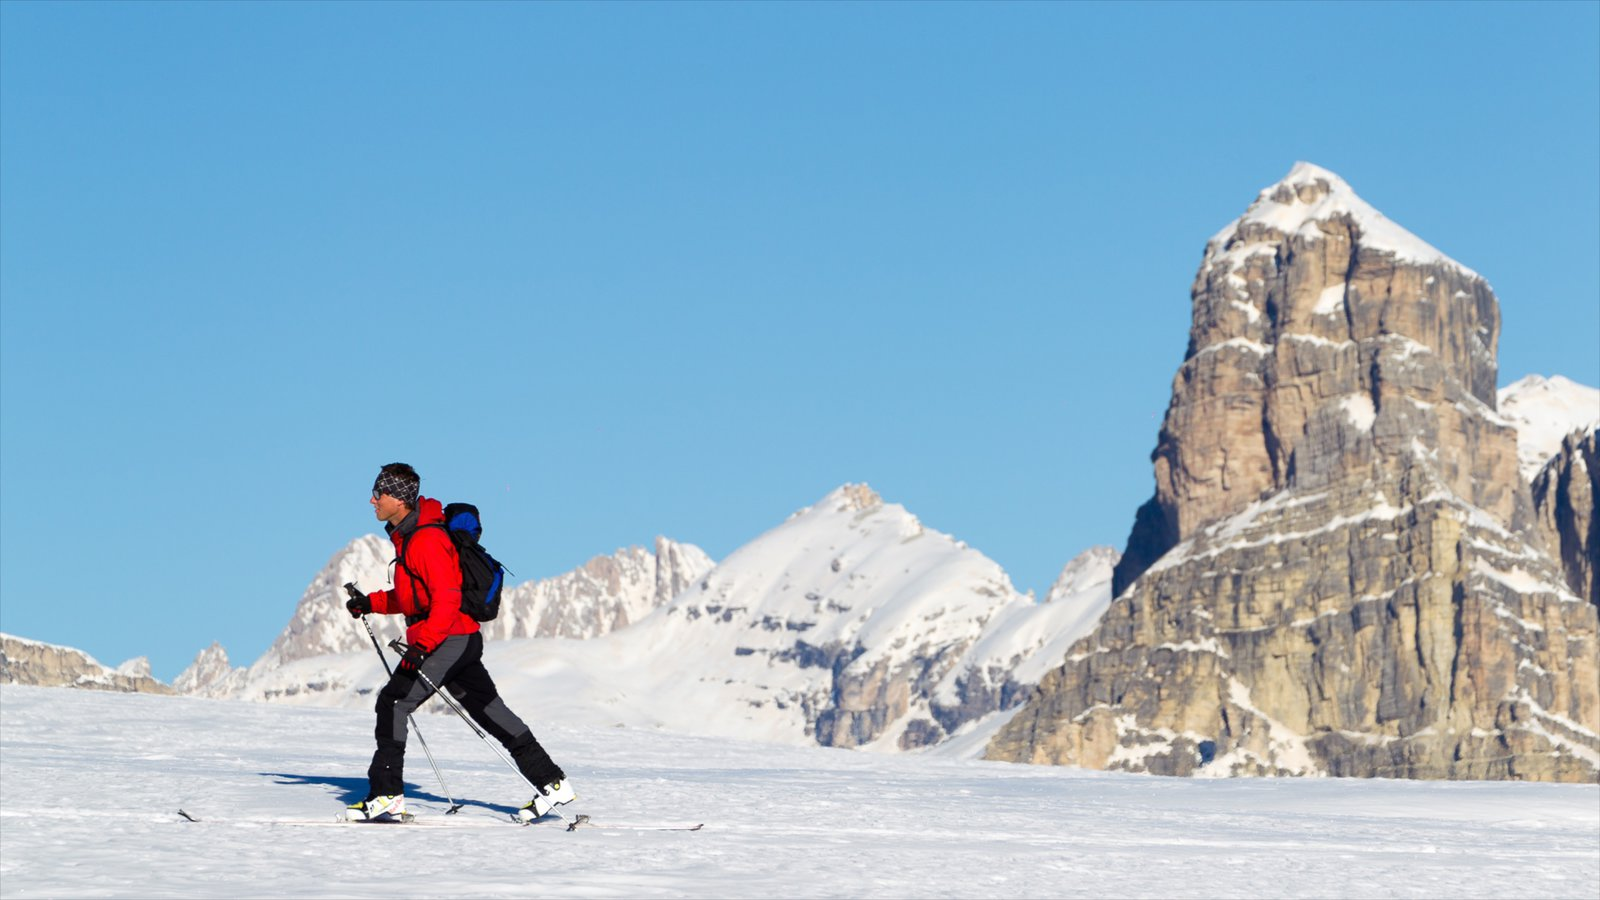 Corvara in Badia showing mountains, snow and snow shoeing